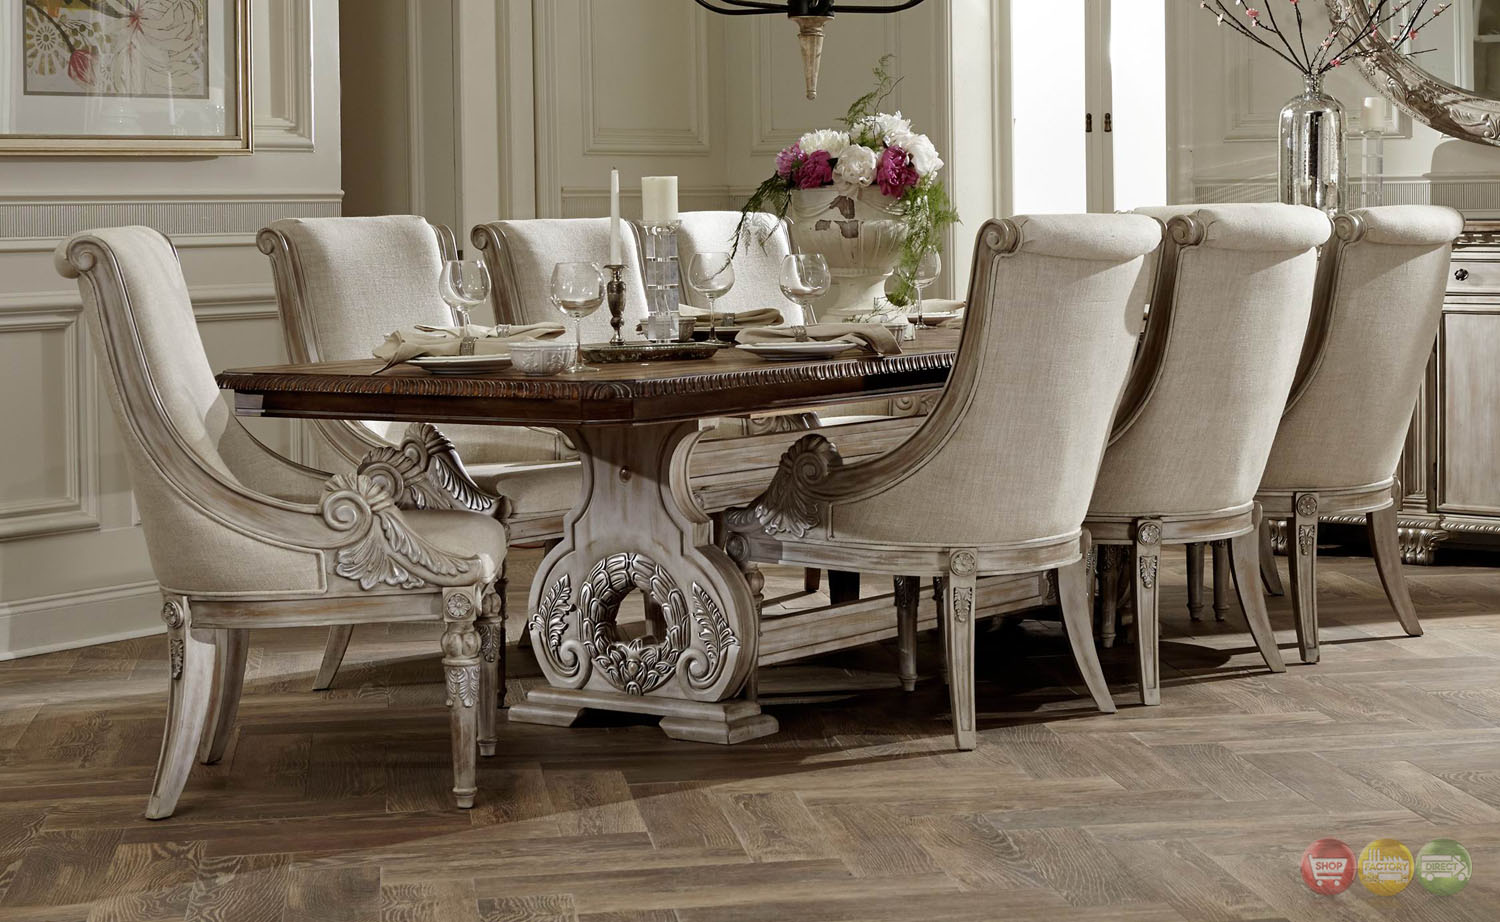 https://sep.yimg.com/ay/yhst-96405782831295/orleans-ii-white-wash-traditional-formal-dining-room-furniture-set-2168ww-11.jpg